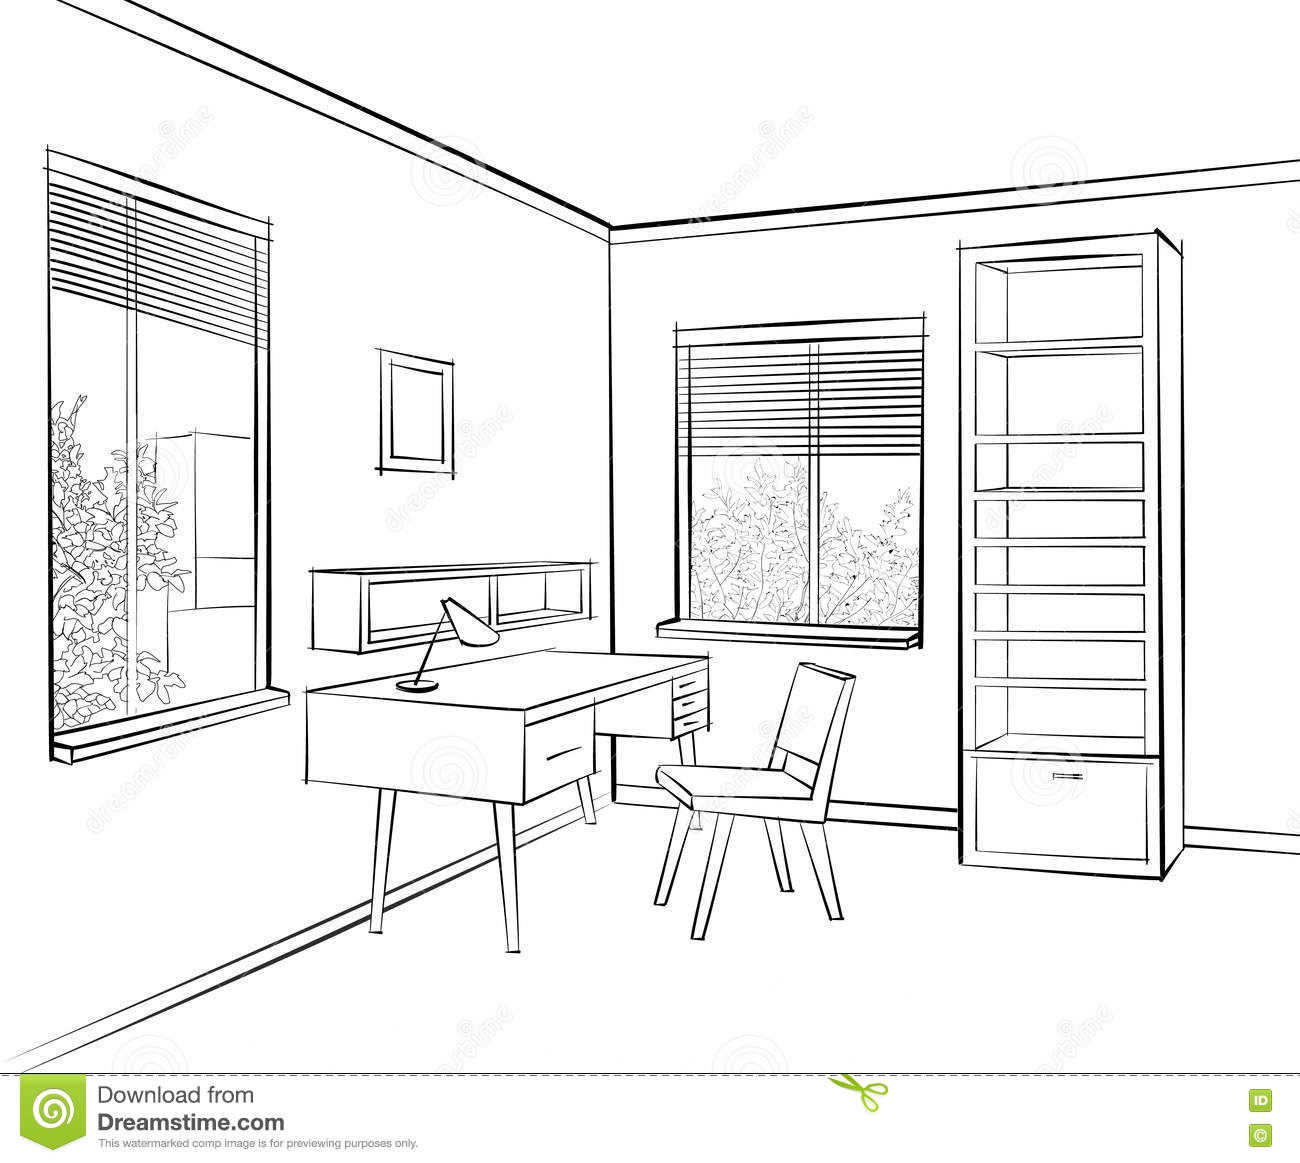 Livign Room Interior Sketch Workplace In Sunny Room